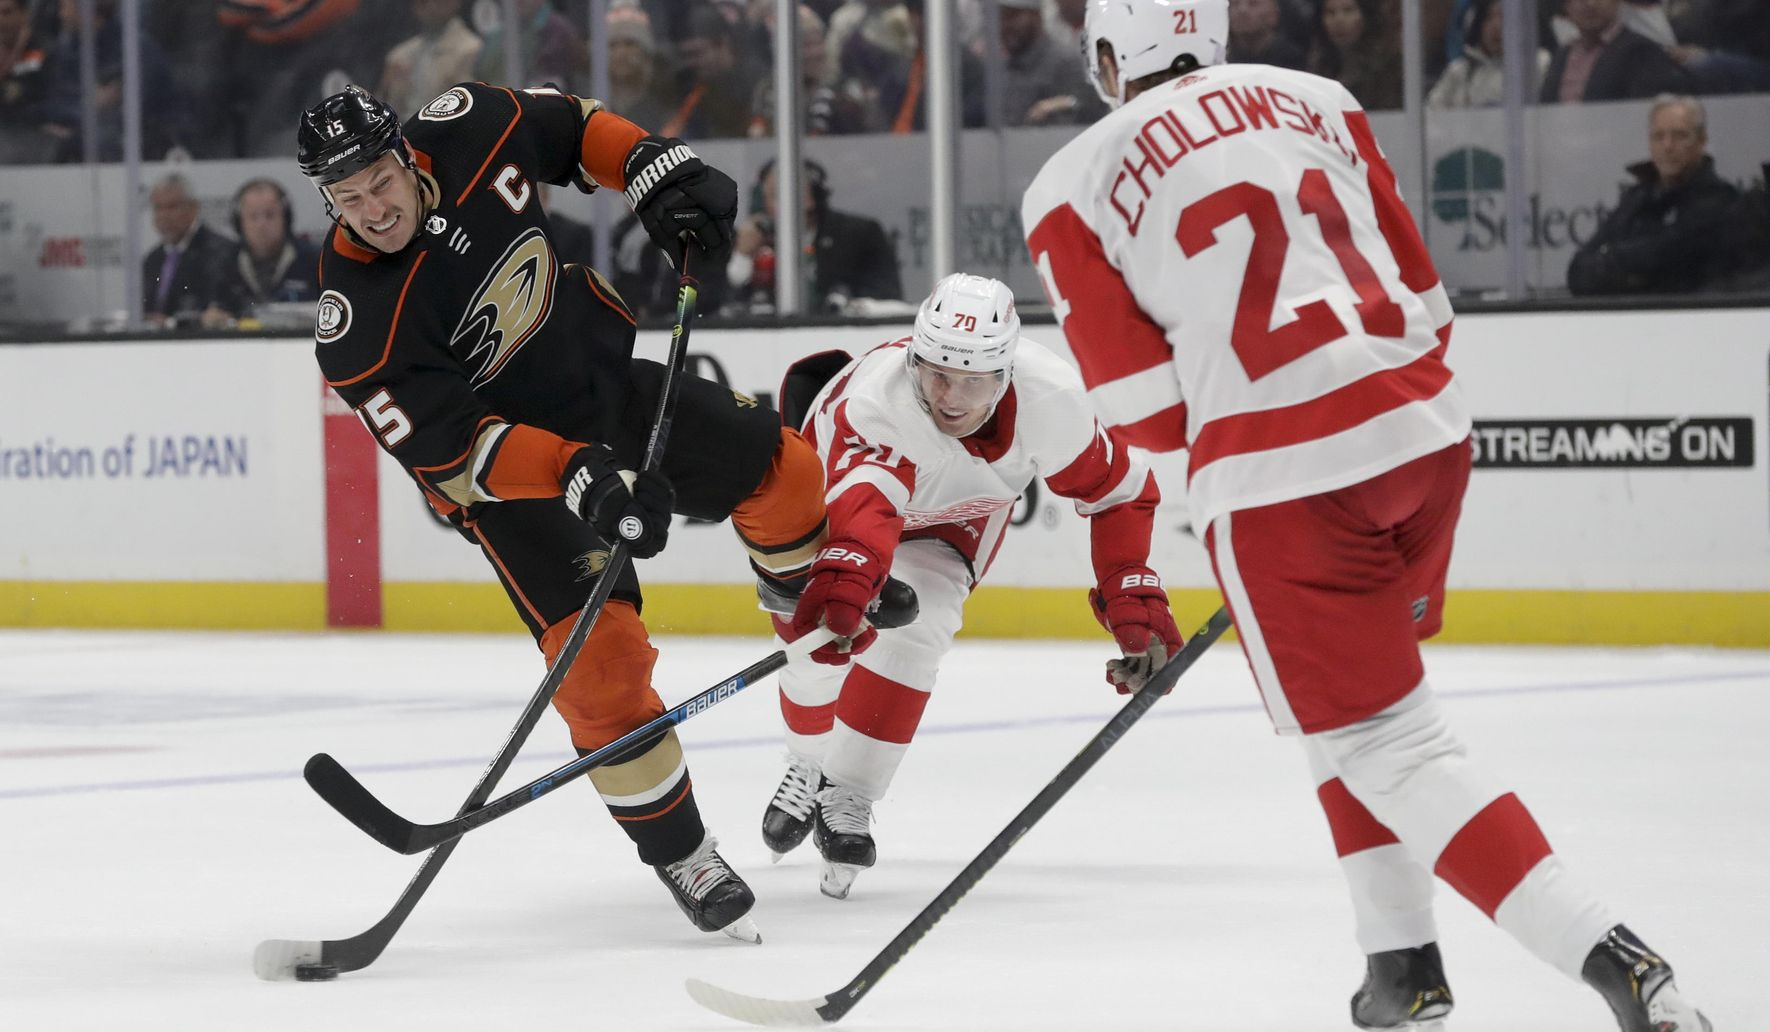 Red_wings_ducks_hockey_91079_c0-160-3823-2389_s1770x1032